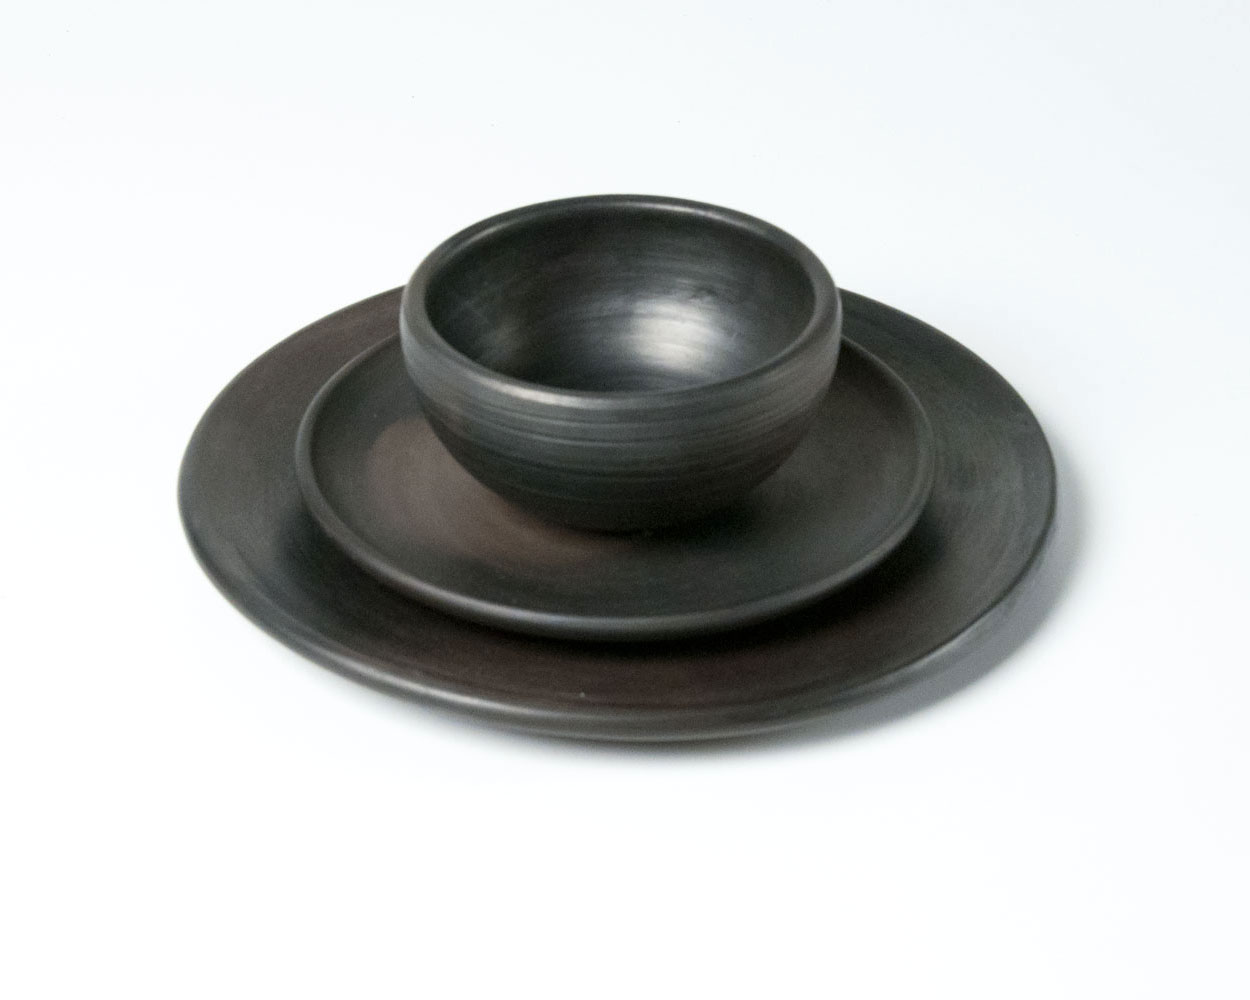 Latvian black pottery set by beate snuka in collaboration with Latgalian potters